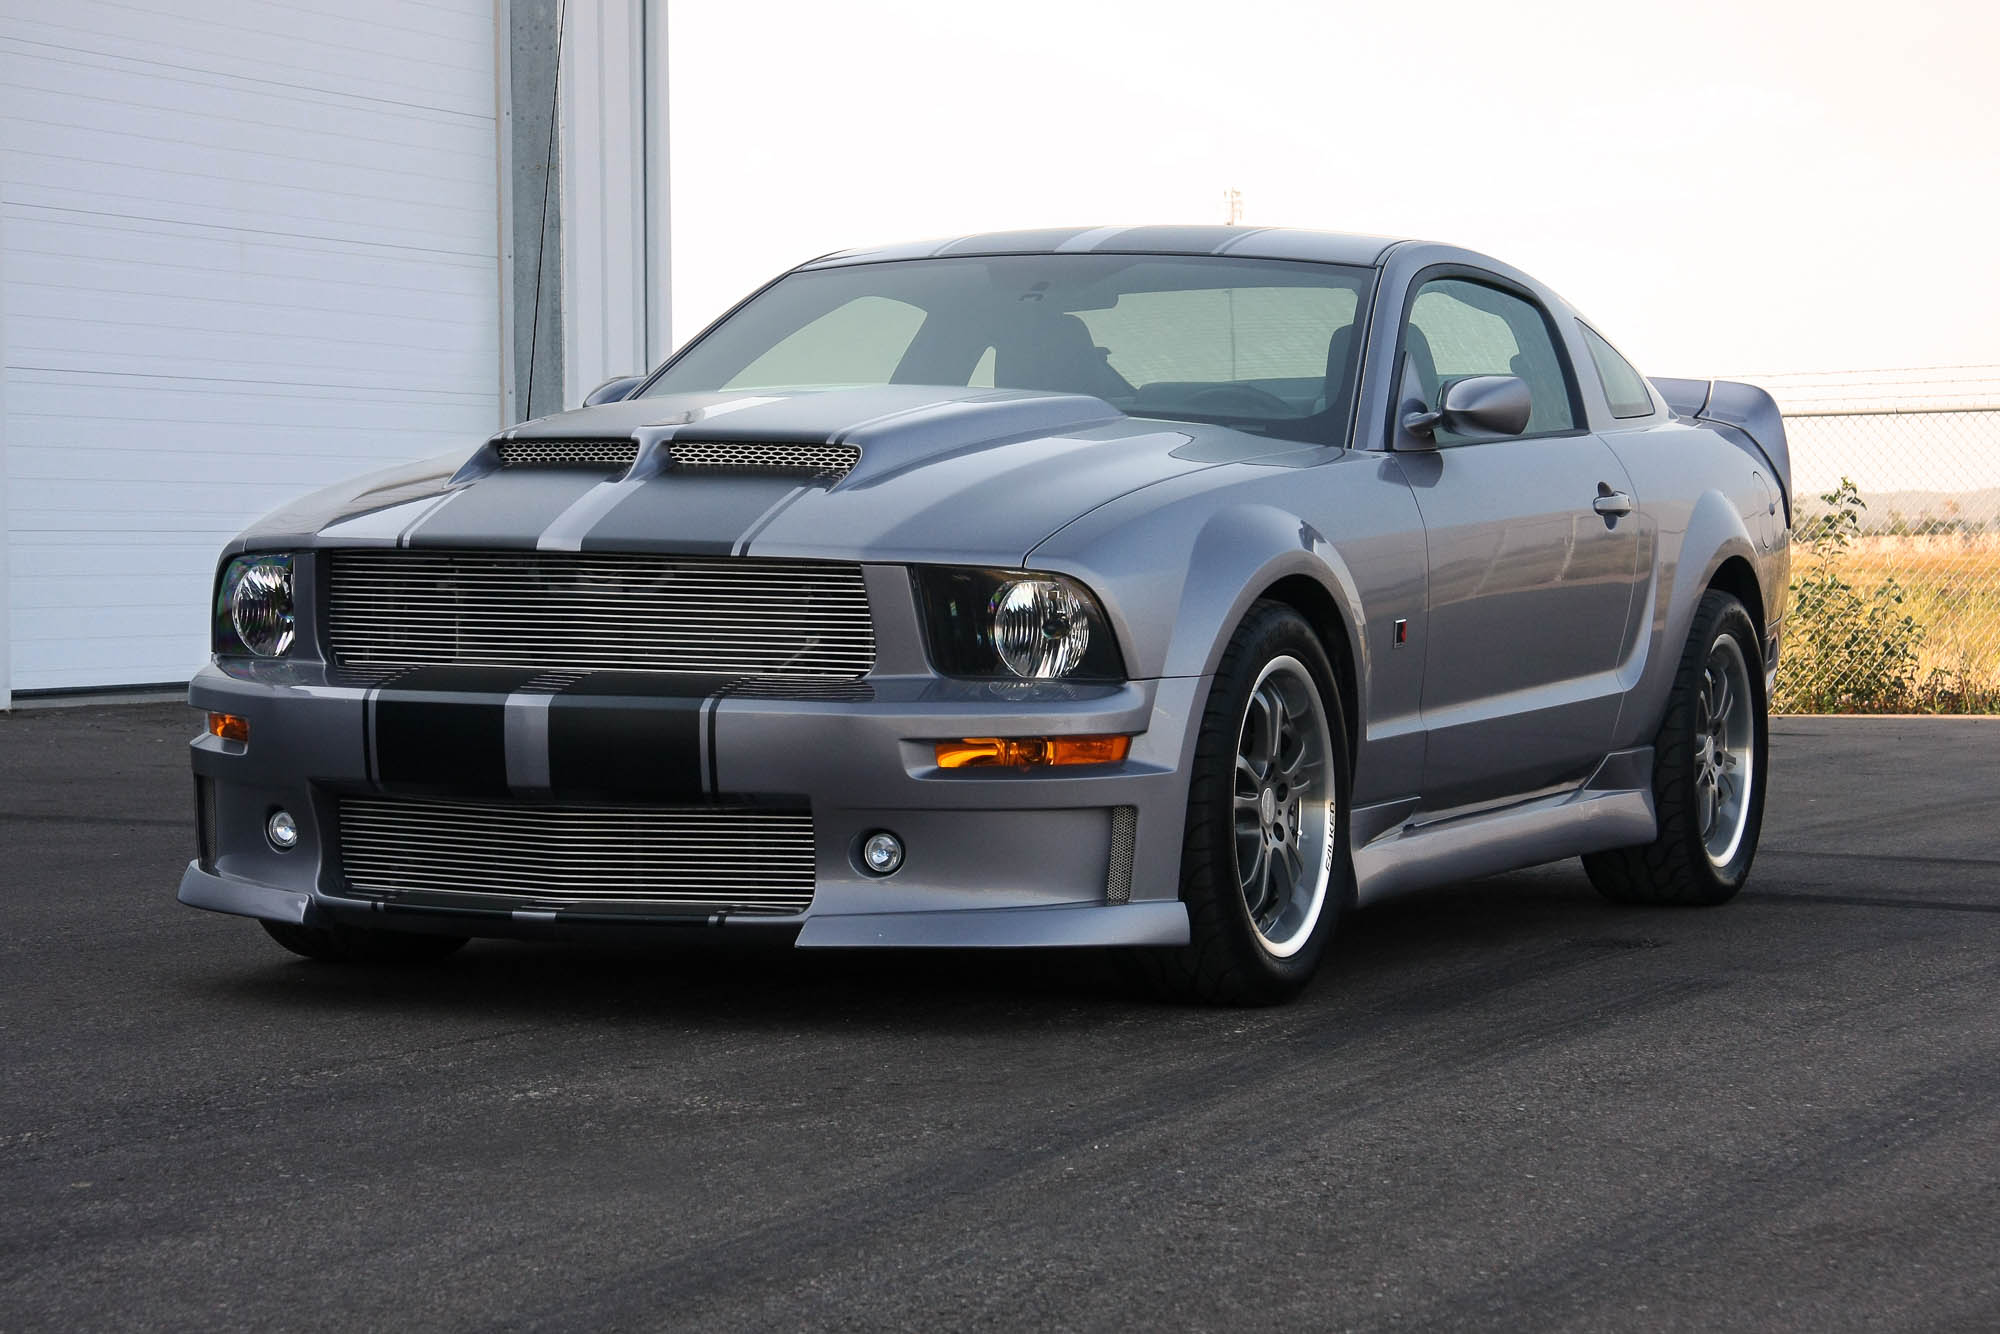 2006 Mustang Gt Specs Upcoming Cars 2020 The Crew Ford Sold Iron Garage